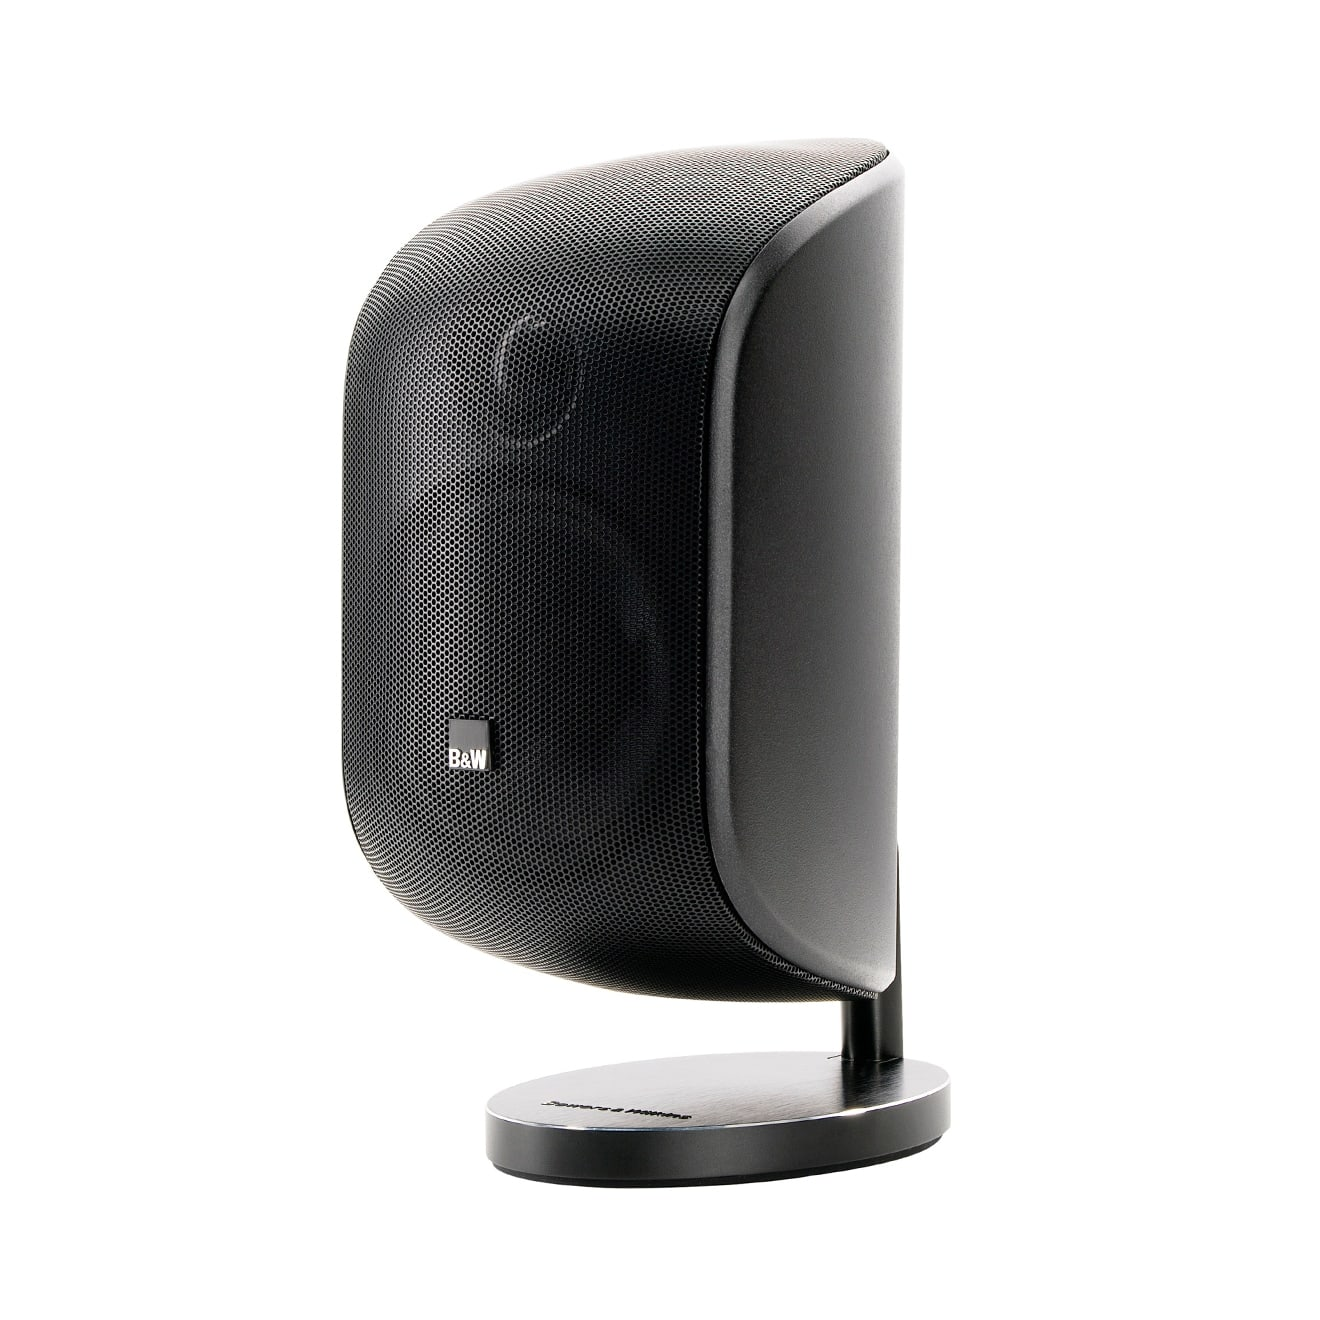 Bowers & Wilkins  B&W  M-1,  Satellite Speaker, Black